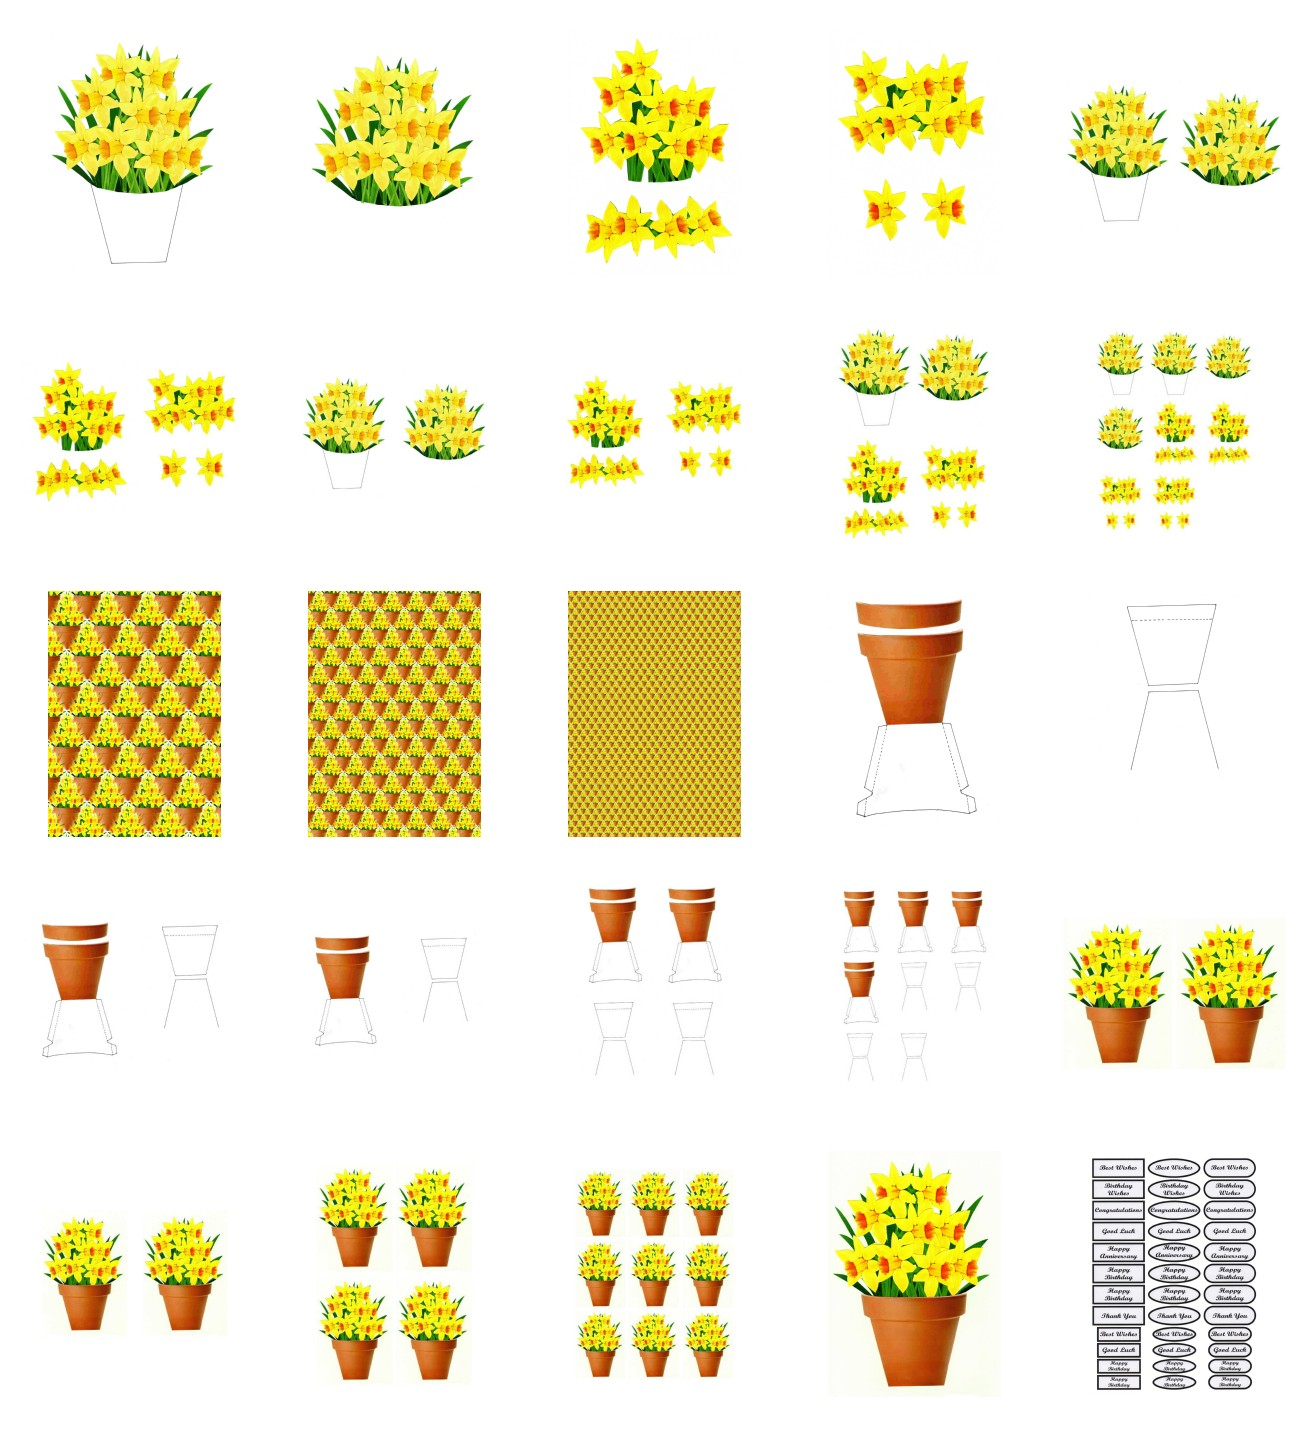 Spring Daffodil Set 02 Flowers - 25 Pages to Download